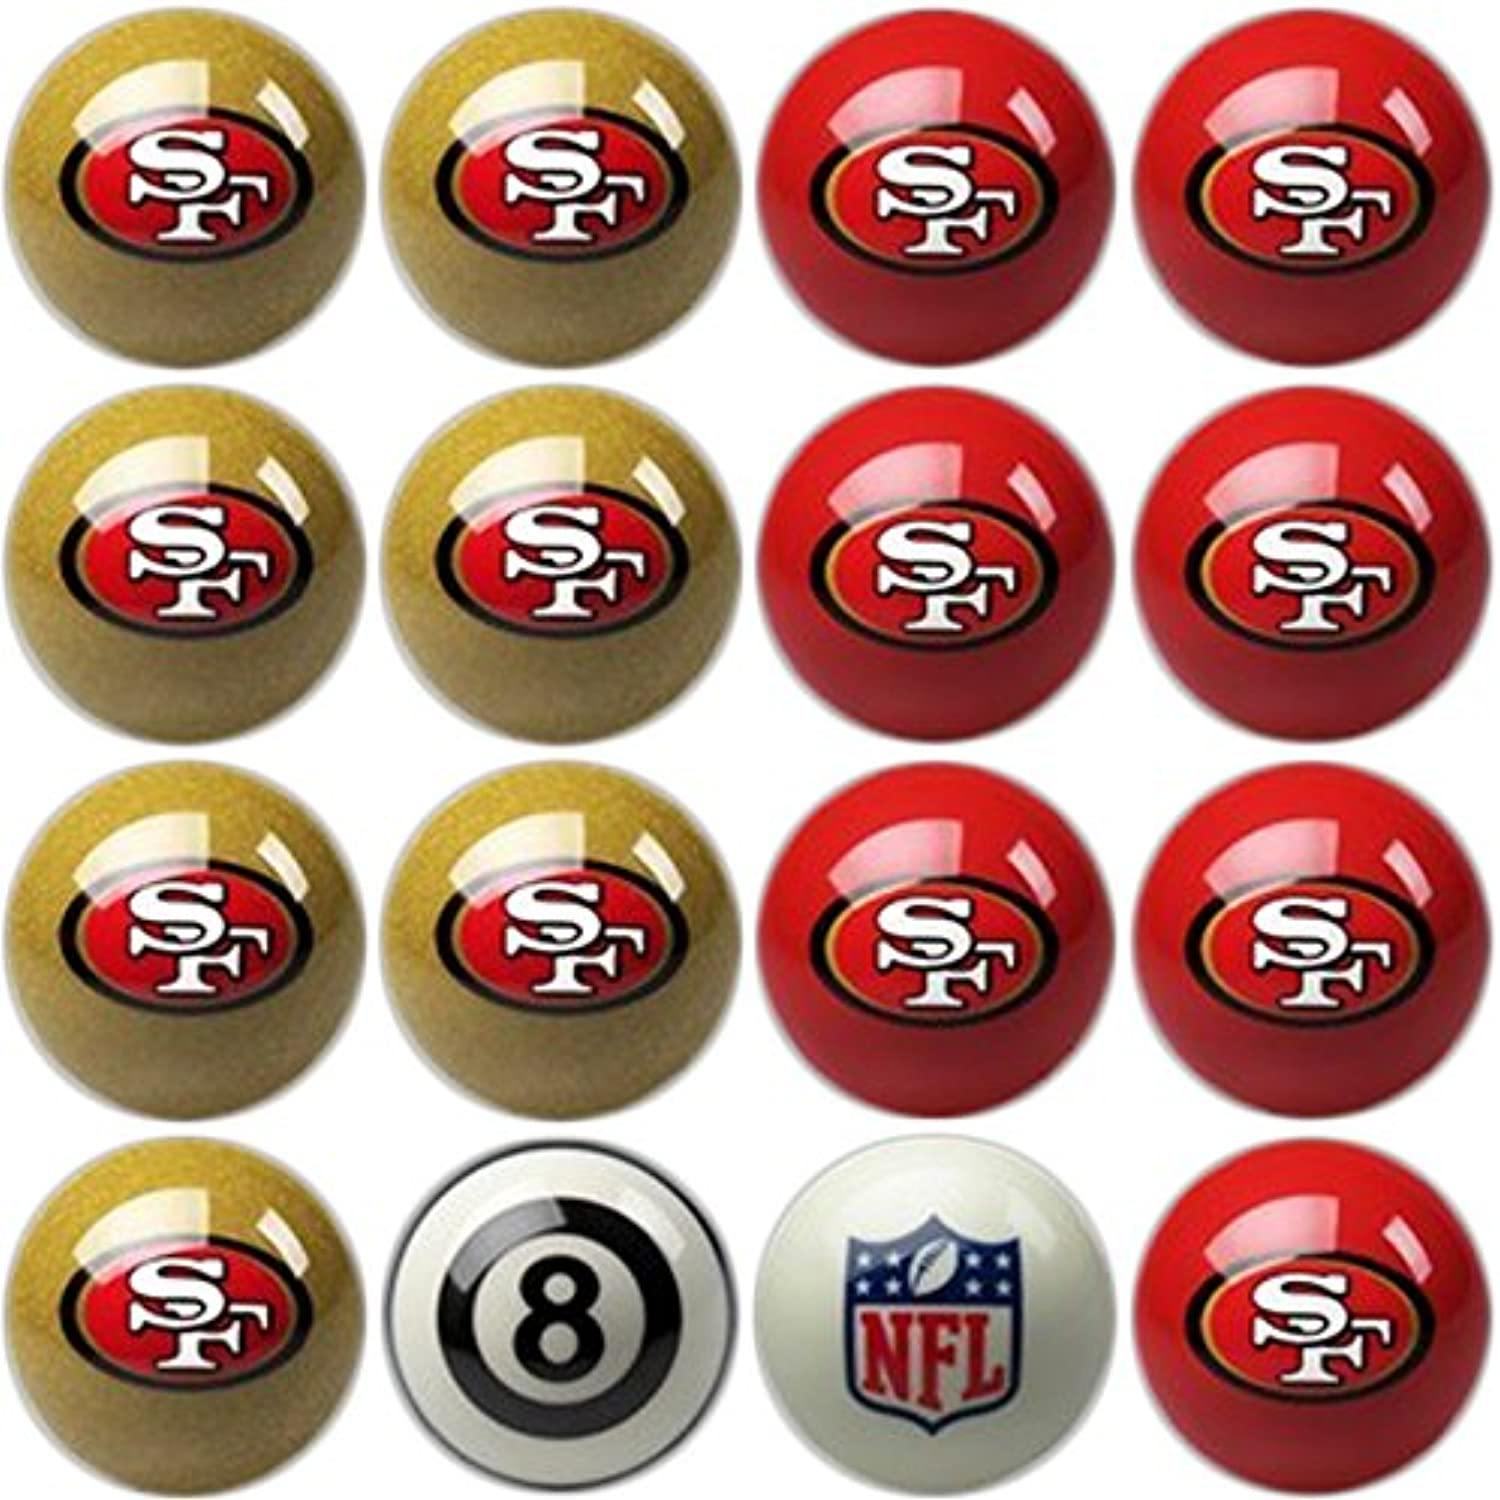 Imperial Officially Licensed NFL Merchandise  Home vs. Away Billiard Pool Balls, Complete 16 Ball Set, San Francisco 49ers